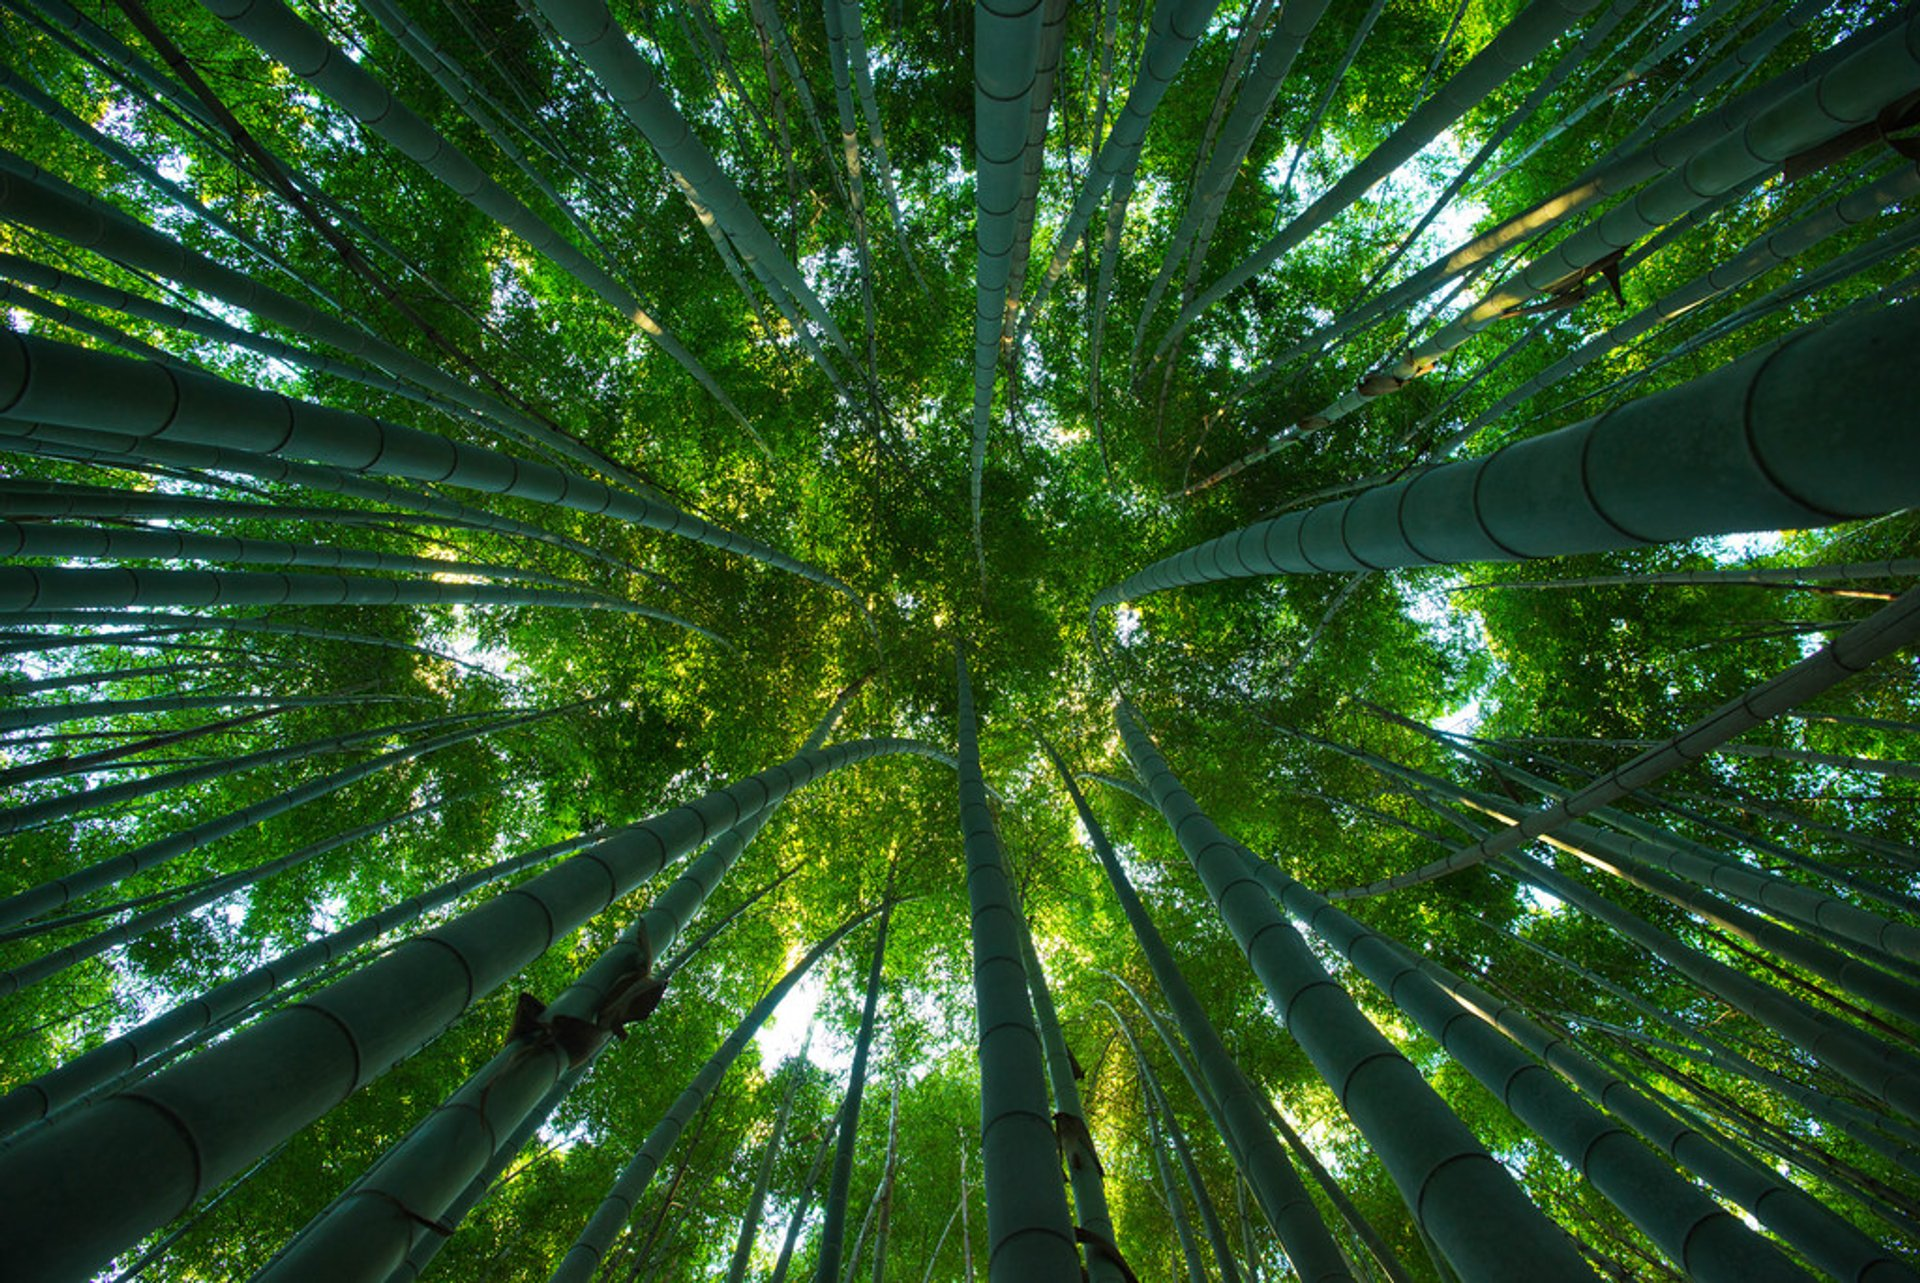 Sagano Bamboo Forest (Arashiyama) in Kyoto 2019 - Best Time